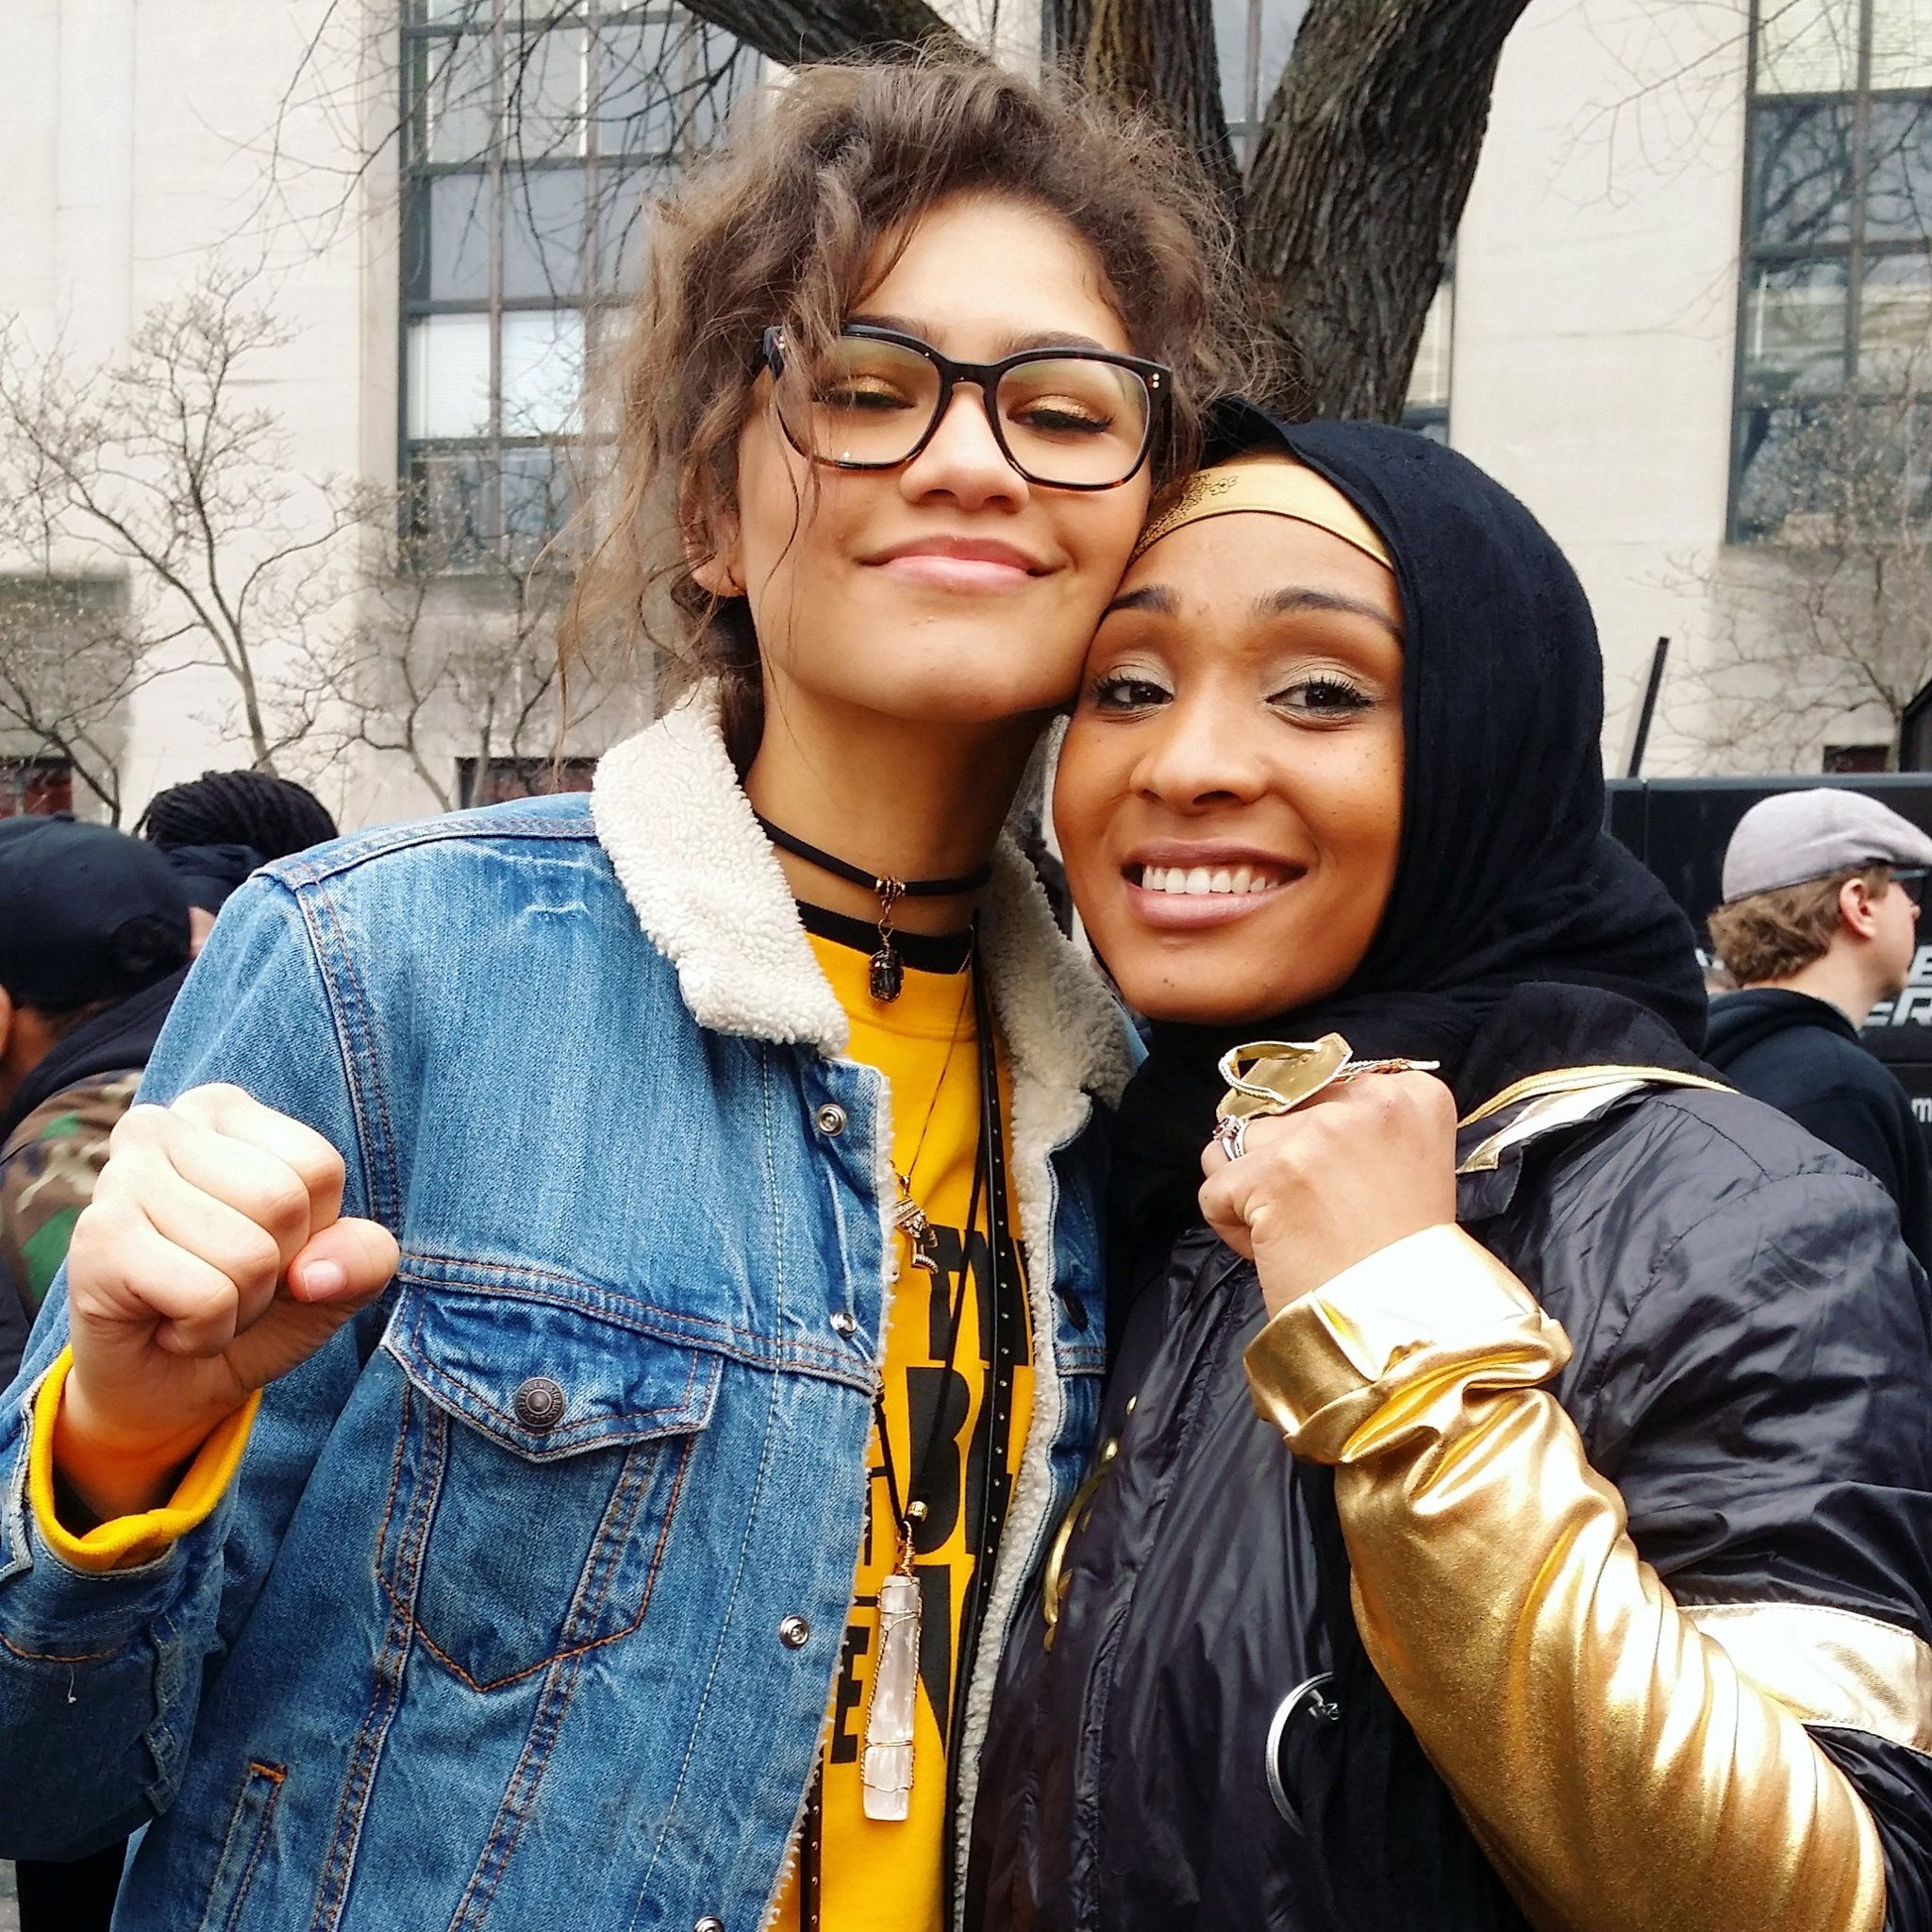 Zendaya and the Women's March in D.C.